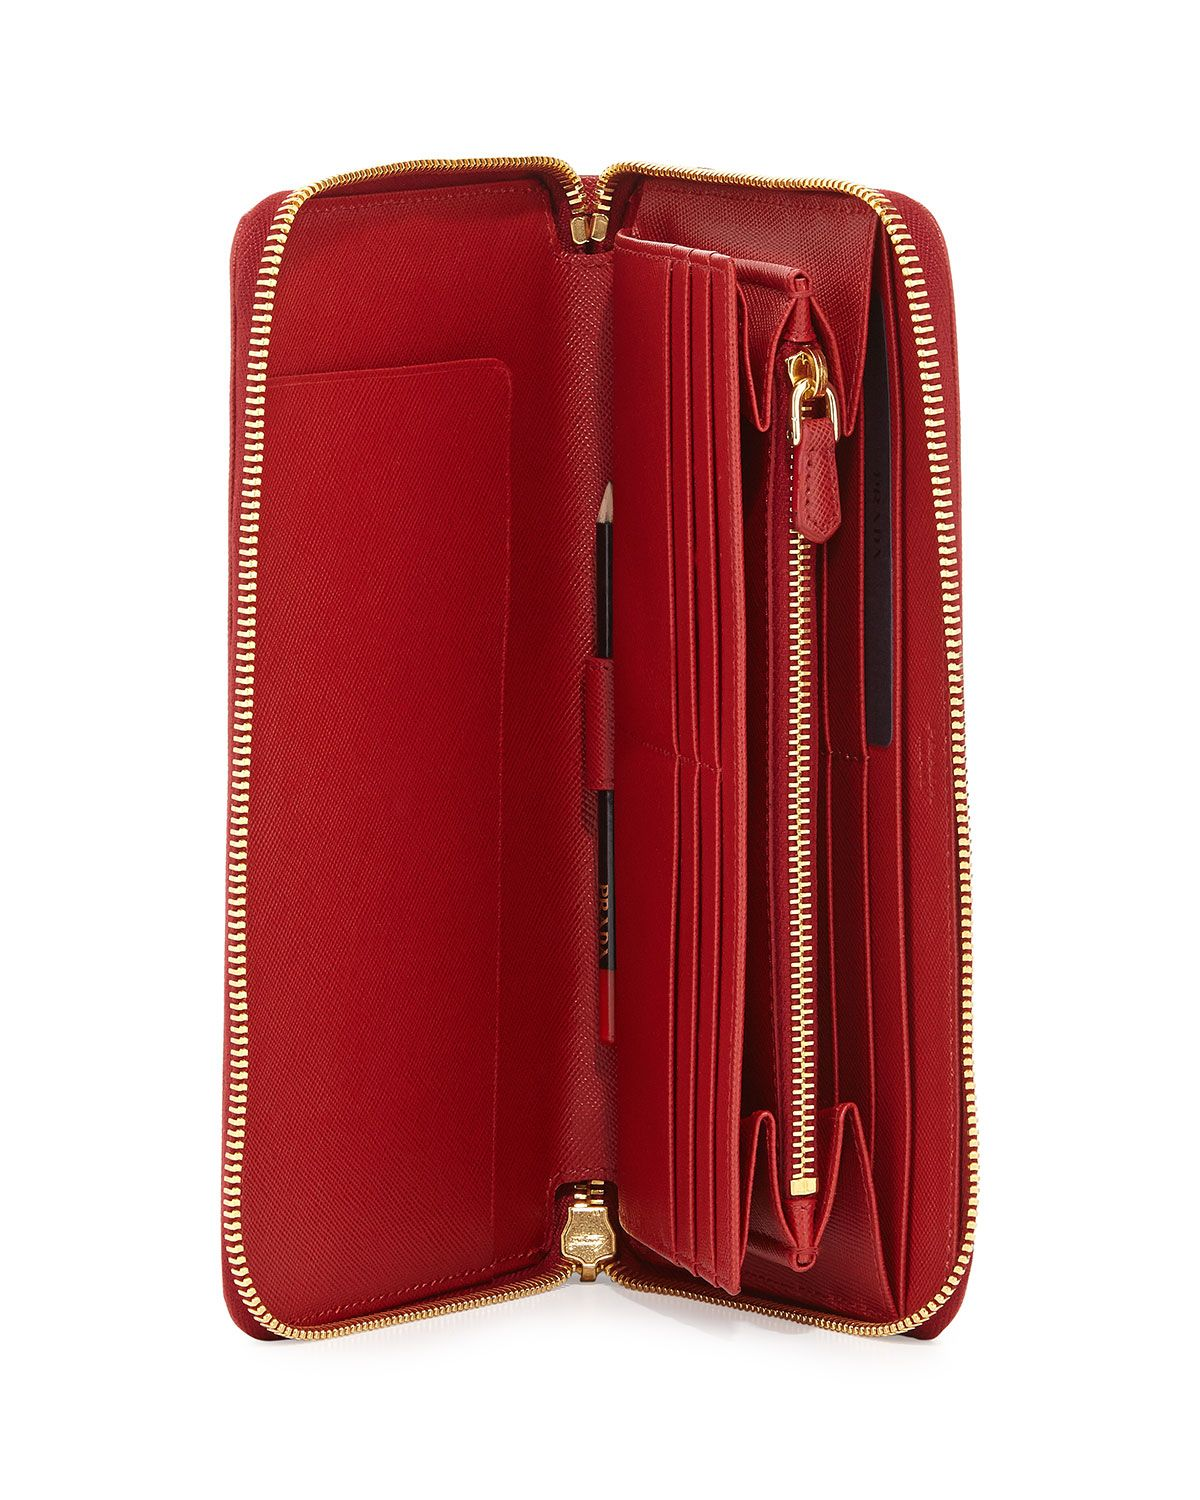 8de109fe14e5 Saffiano Large Zip-Around Travel Wallet Red (Fuoco) | Products ...